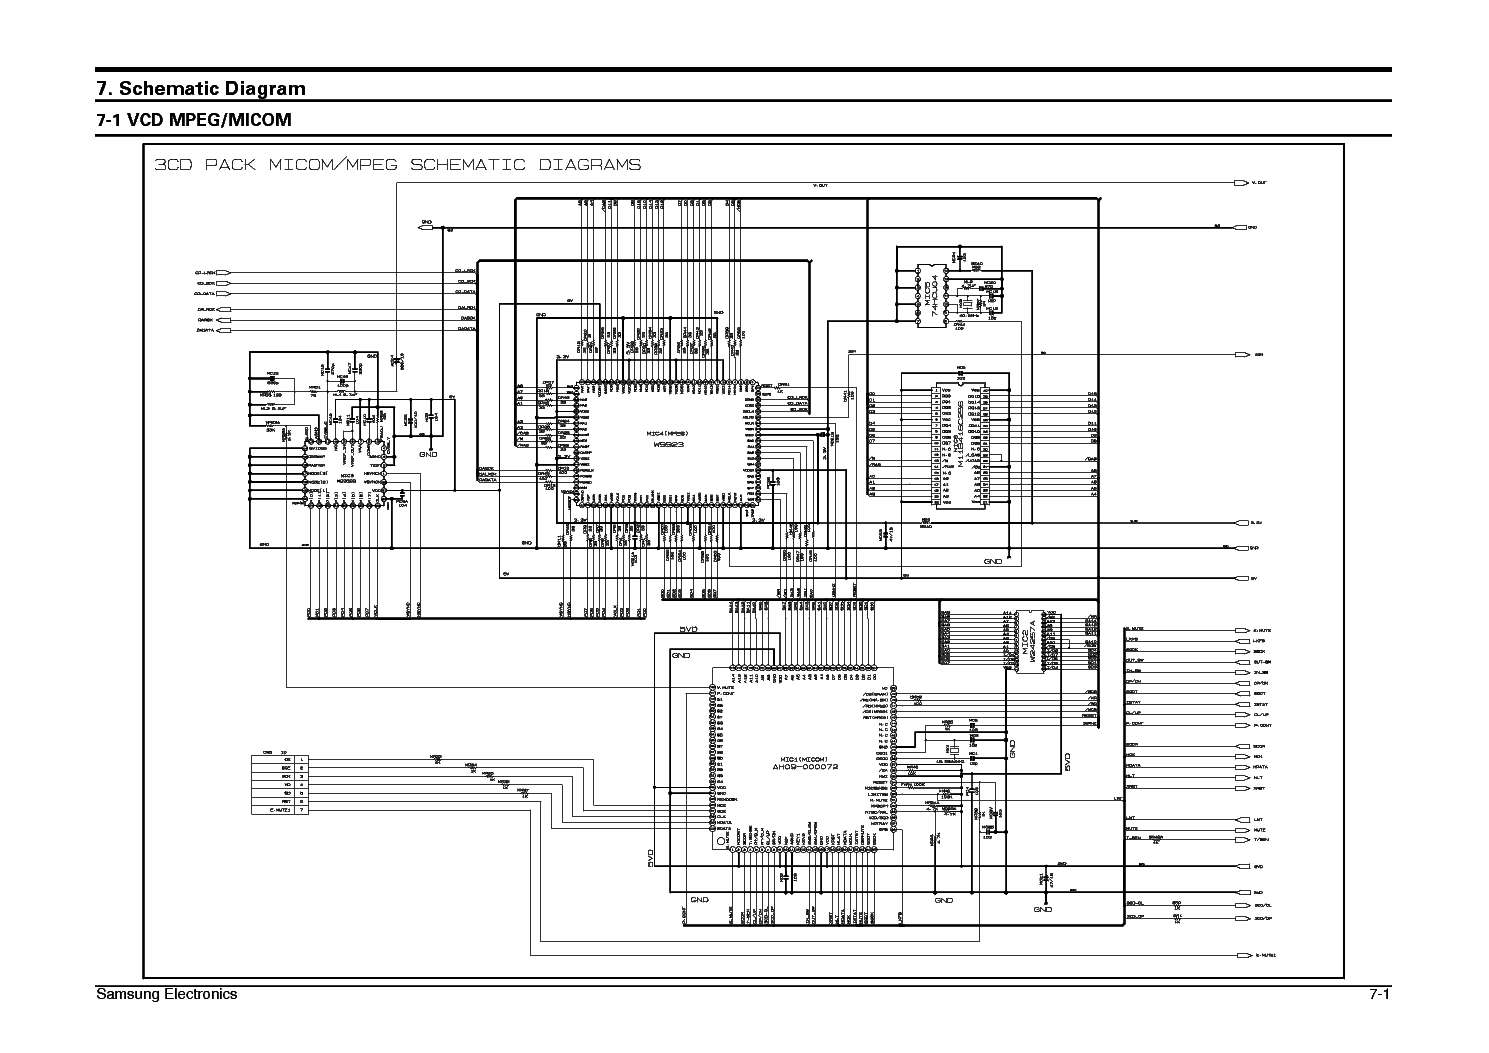 Samsung Hte 350k Service Manual Free Download Schematics